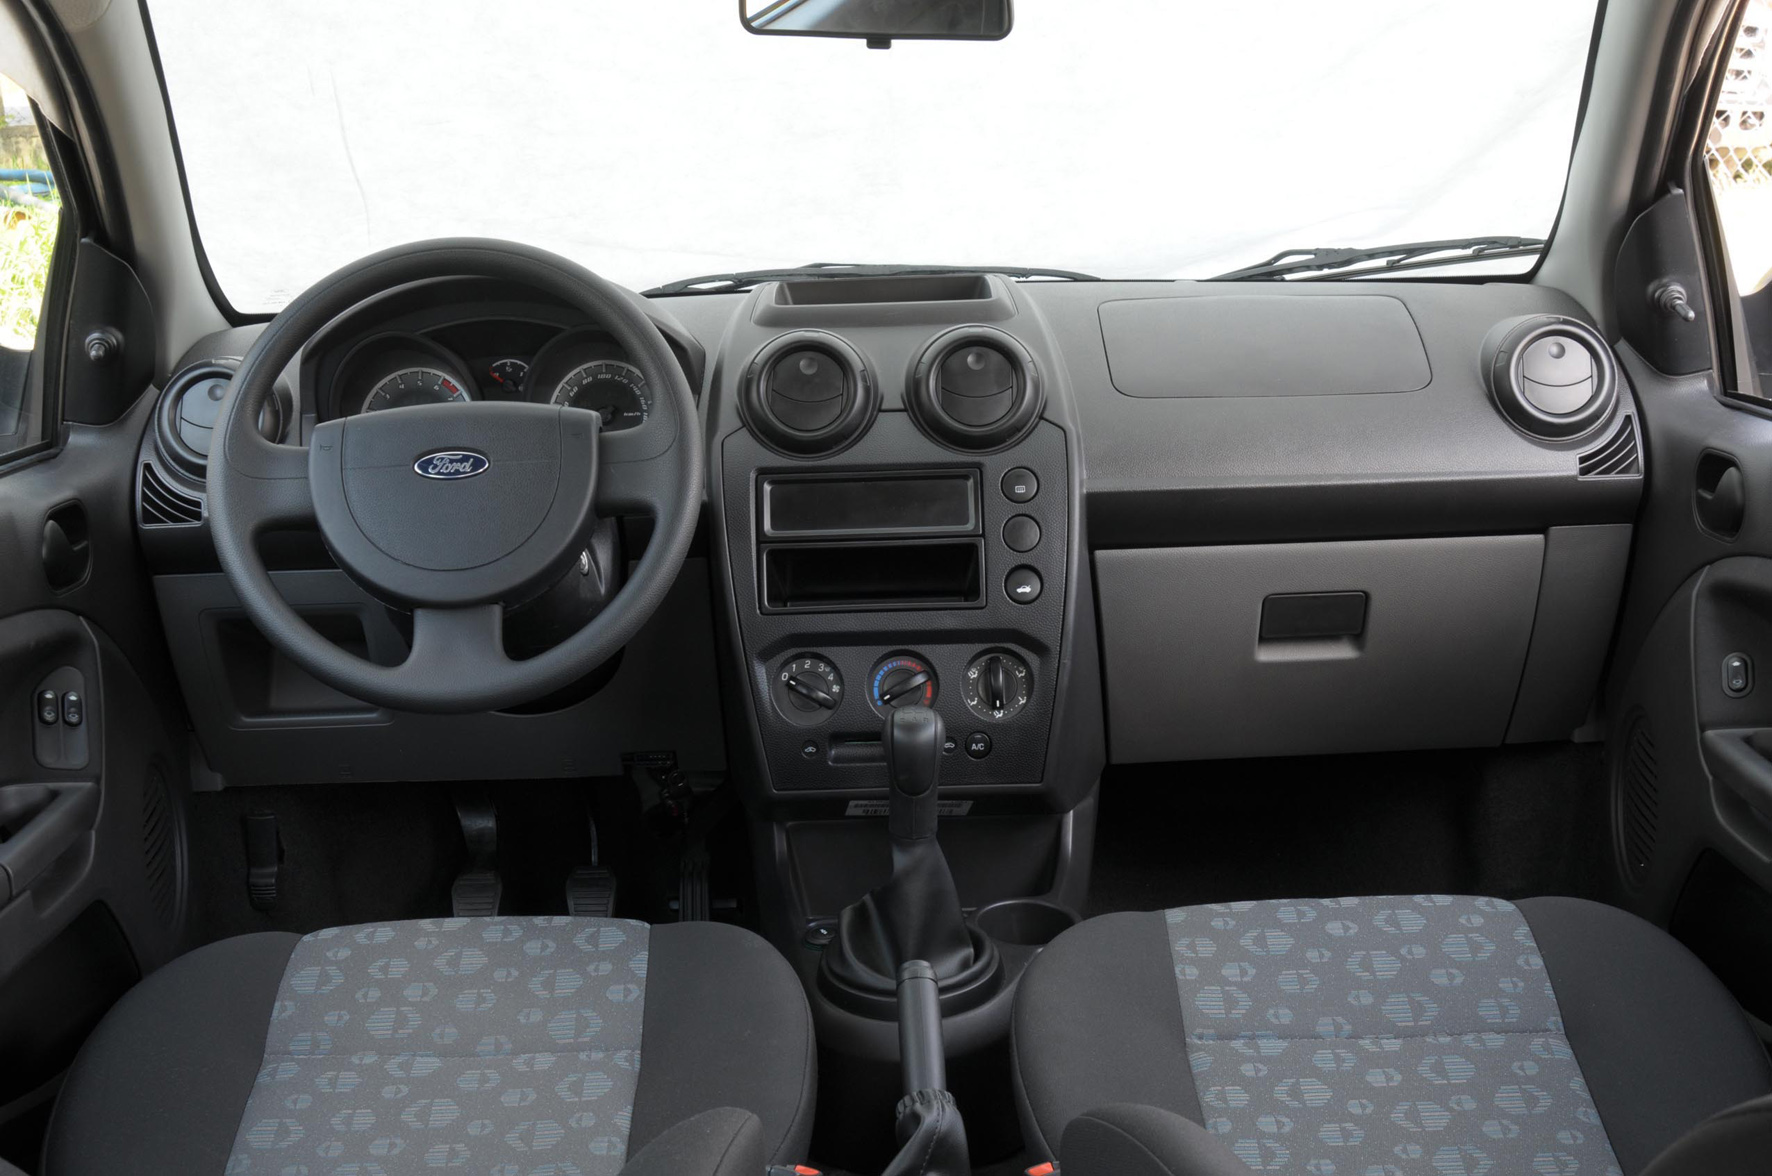 Ford Fiesta 1.0 2010 photo - 4